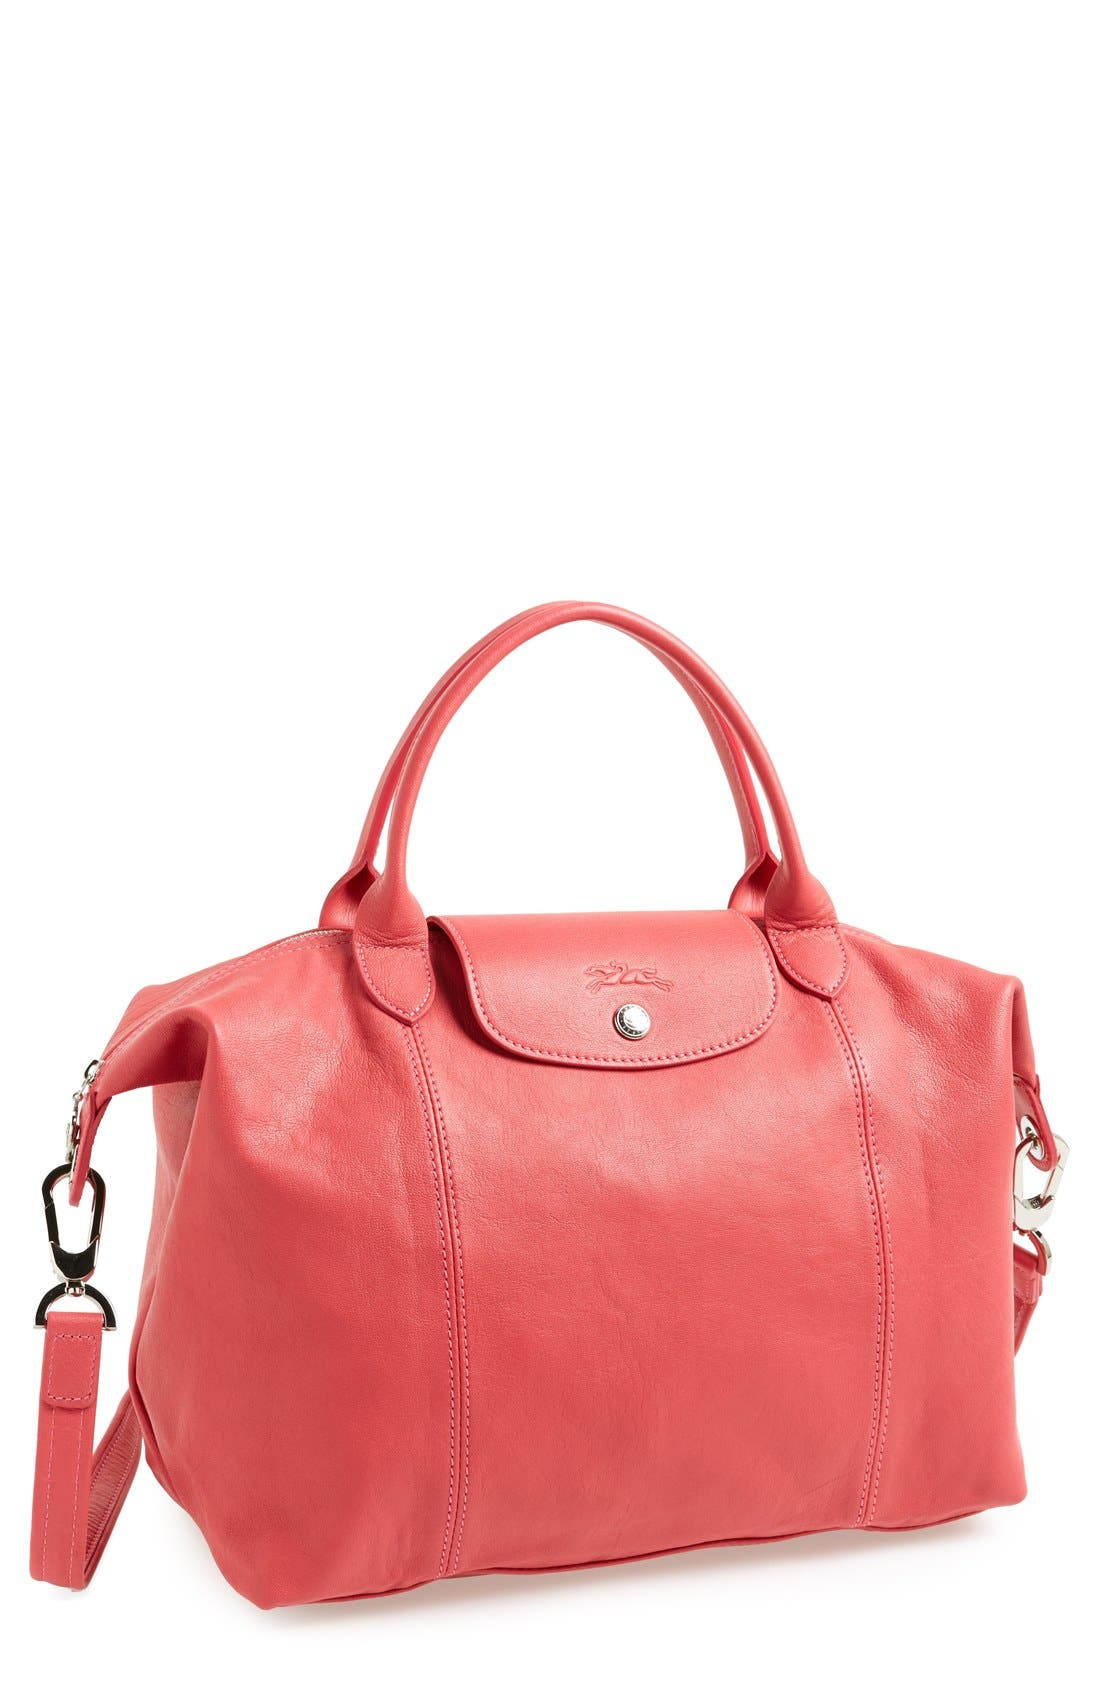 Medium 'Le Pliage Cuir' Leather Top Handle Tote,                             Main thumbnail 28, color,